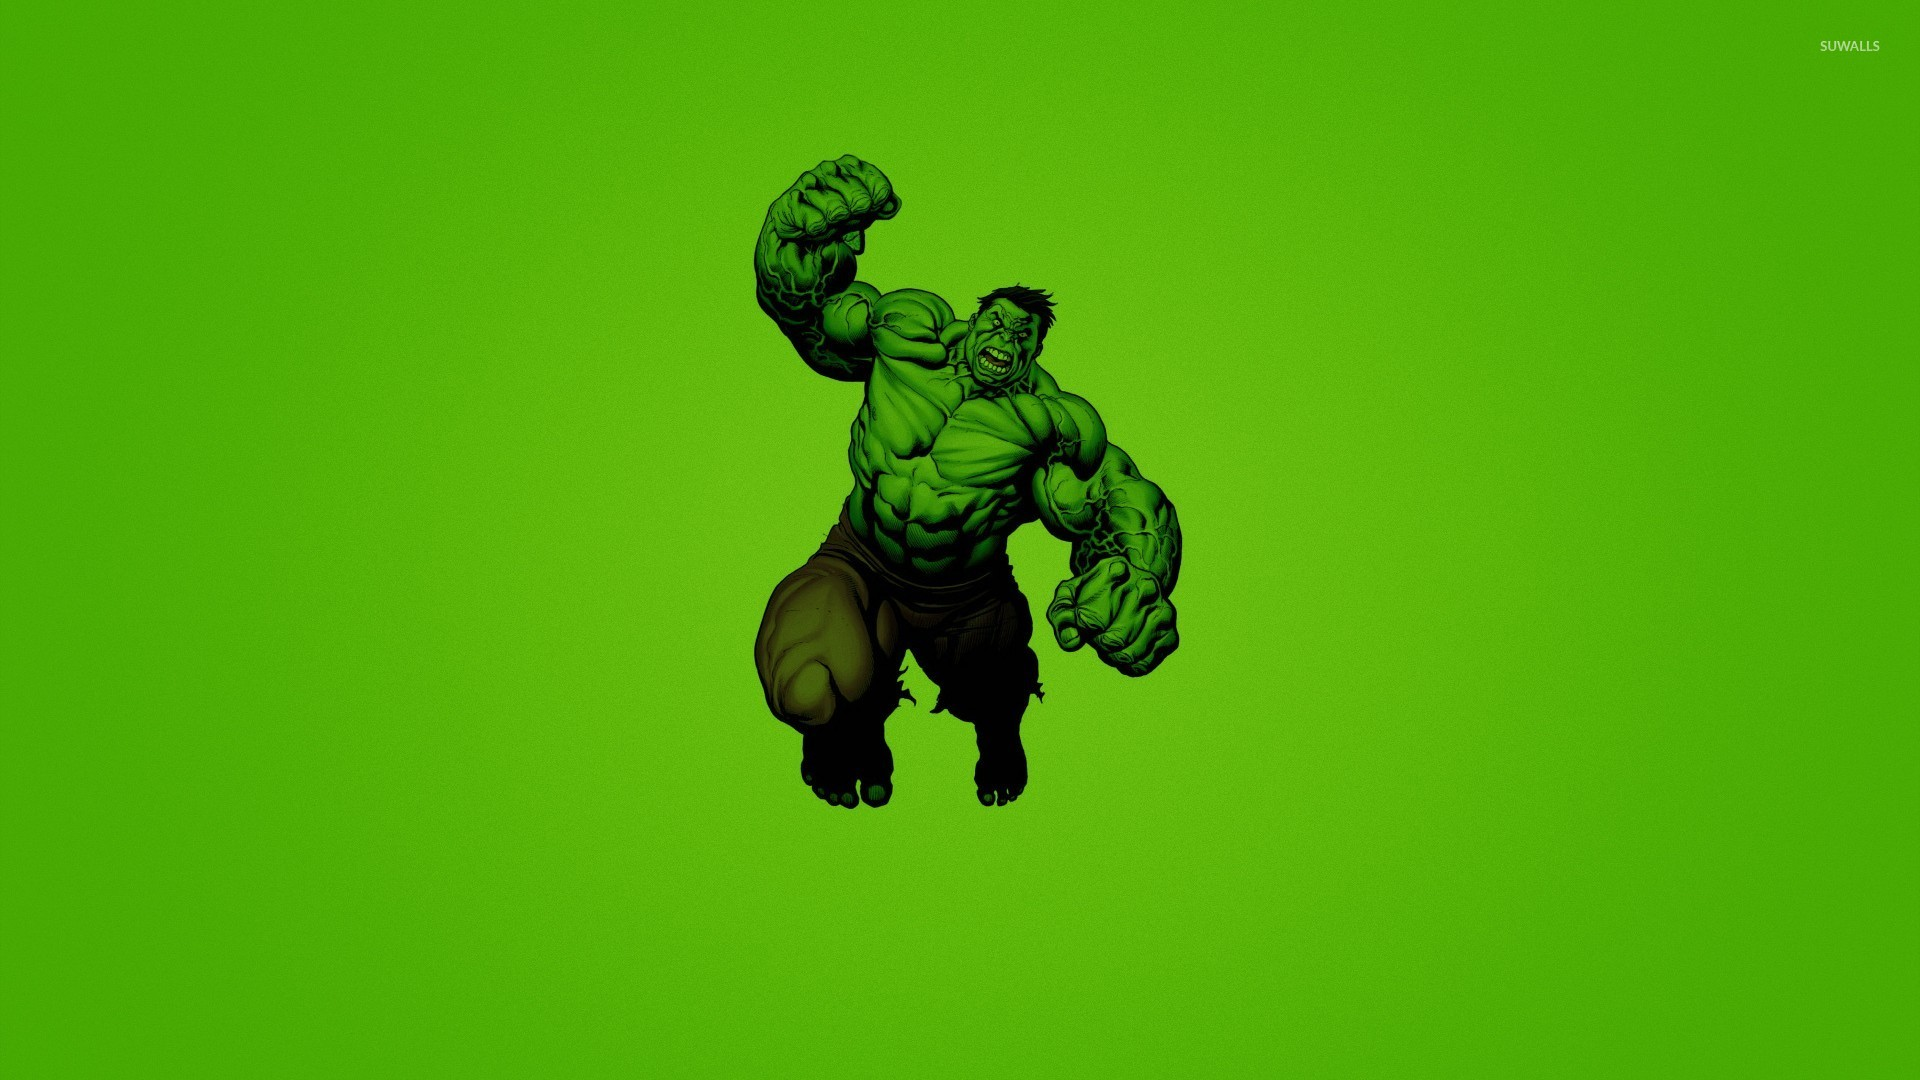 Hulk Wallpapers and Background Images   stmednet 1920x1080